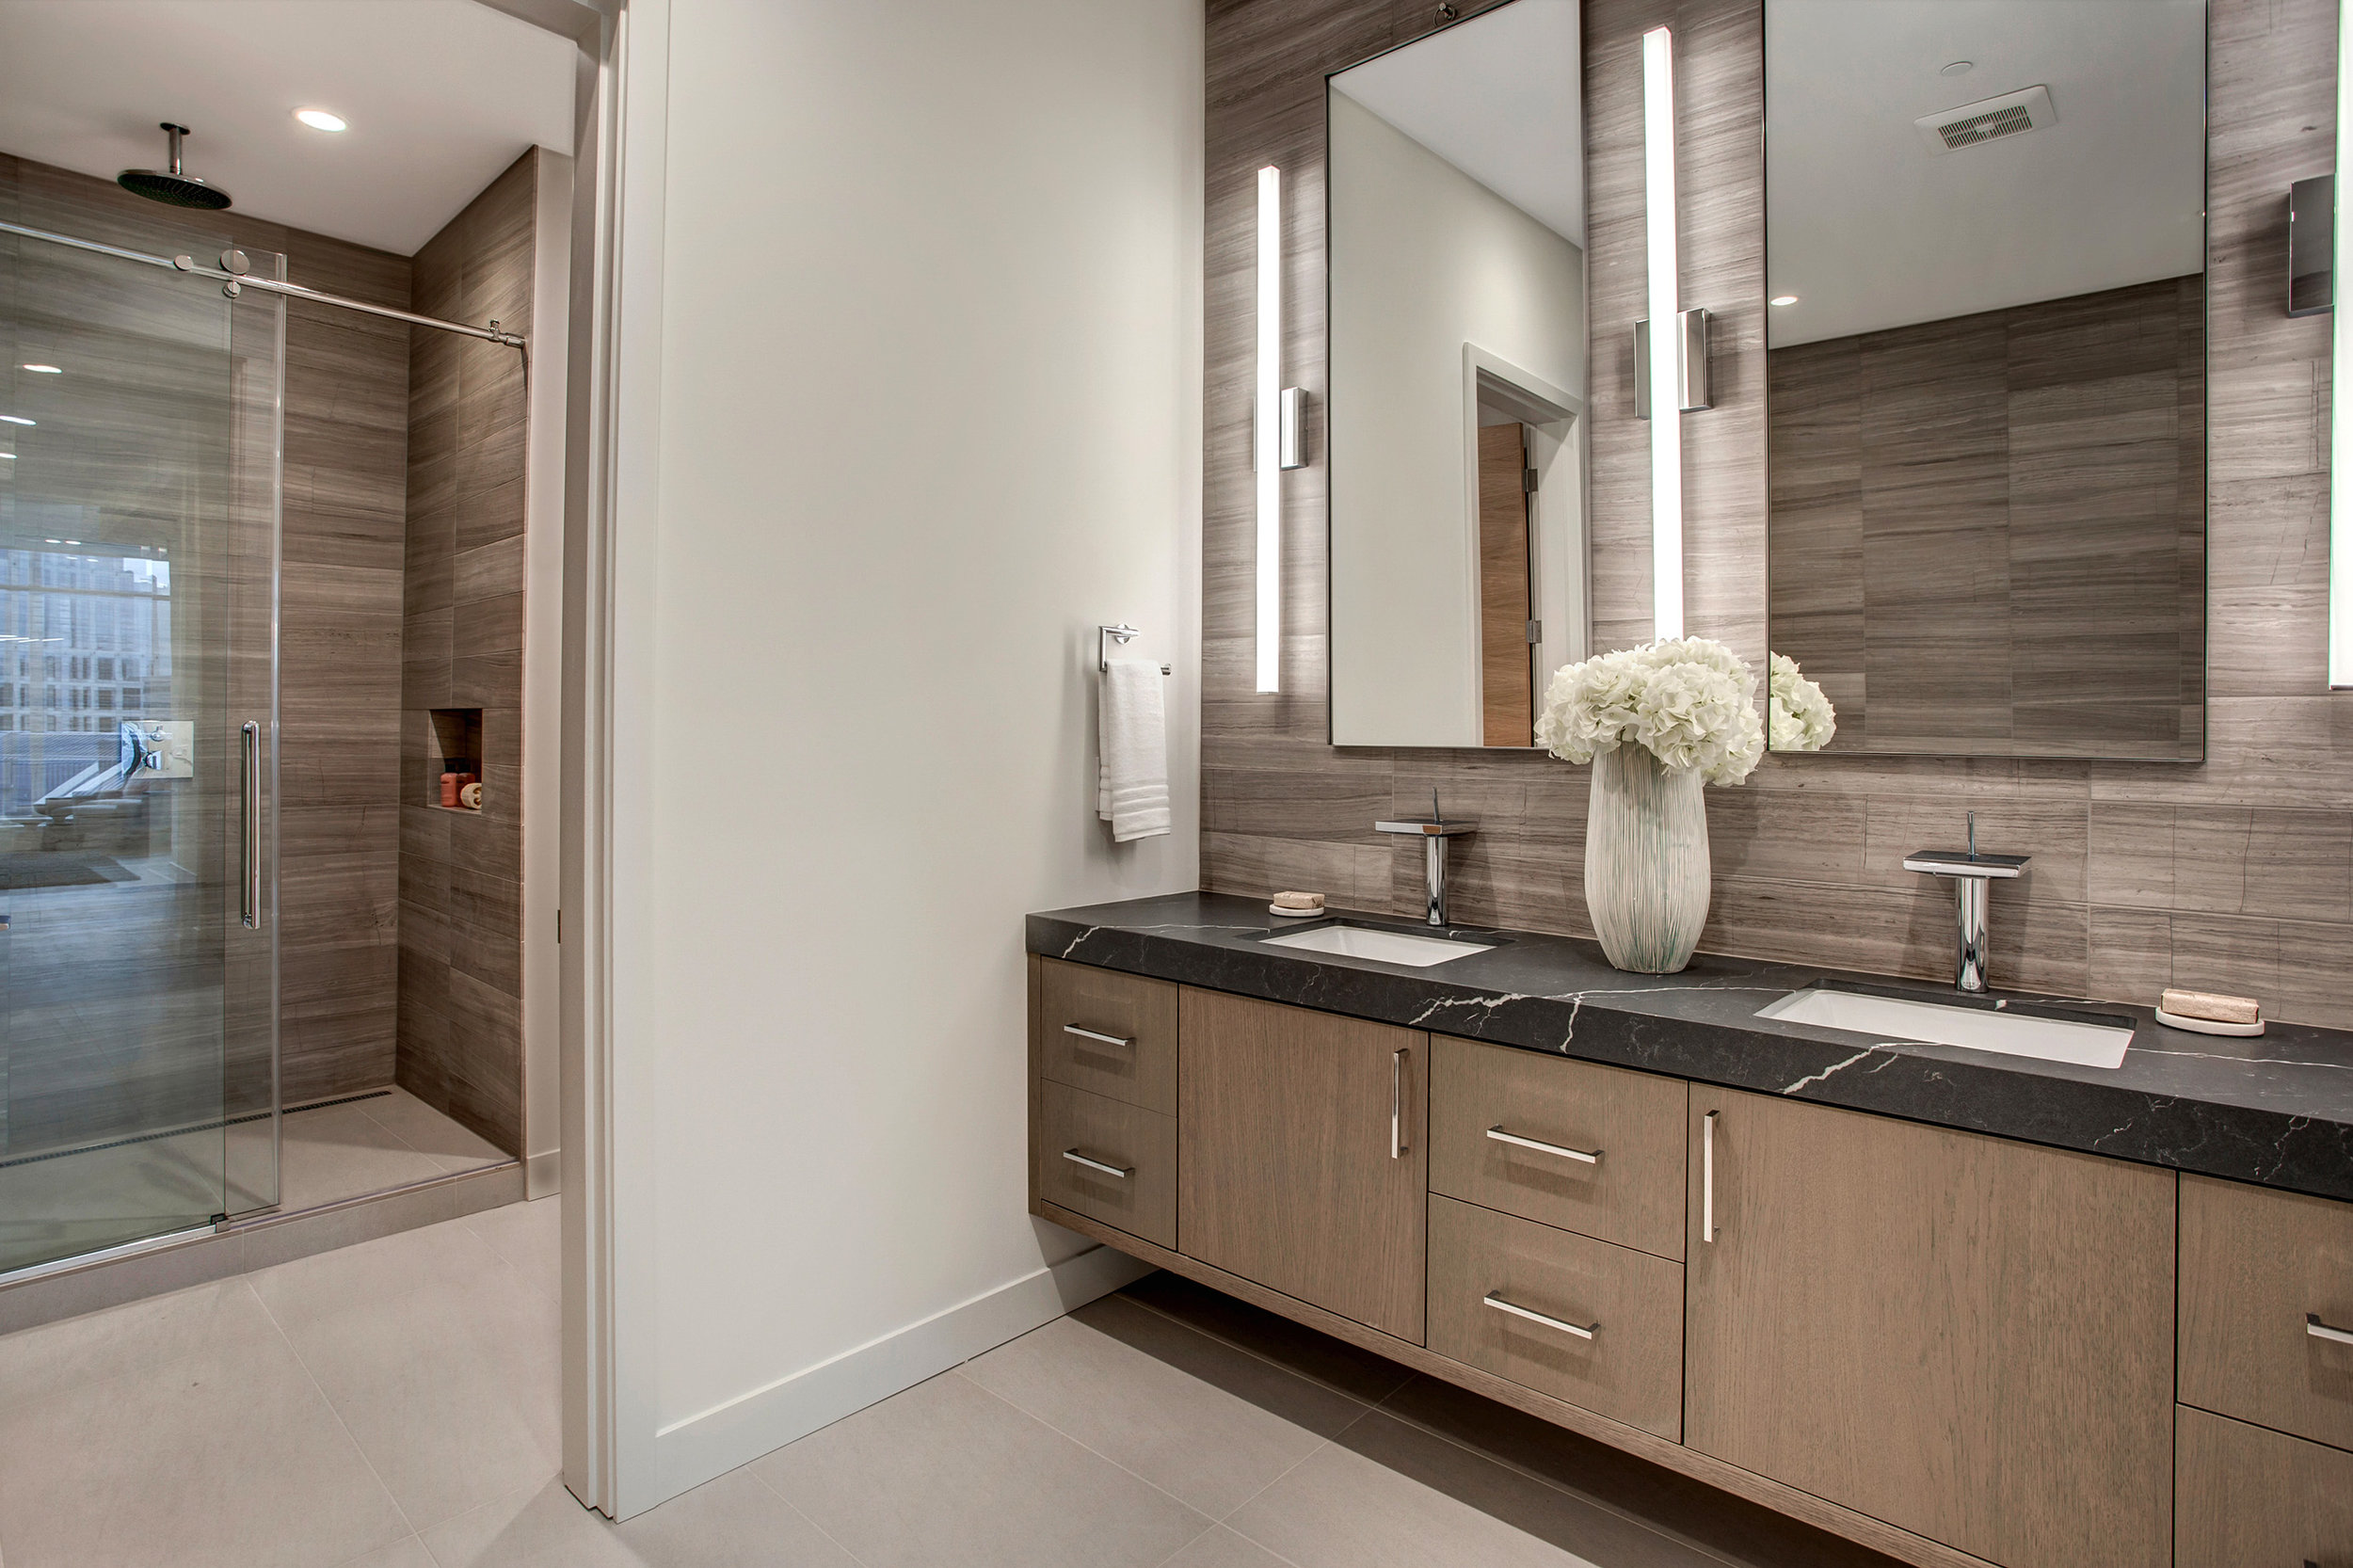 Master bathroom shower includes a Transcend sliding door, Hansgrohe Axor hand and rain shower heads, Thermostatic shower, linear shower drain, and floor to ceiling Marble tile.